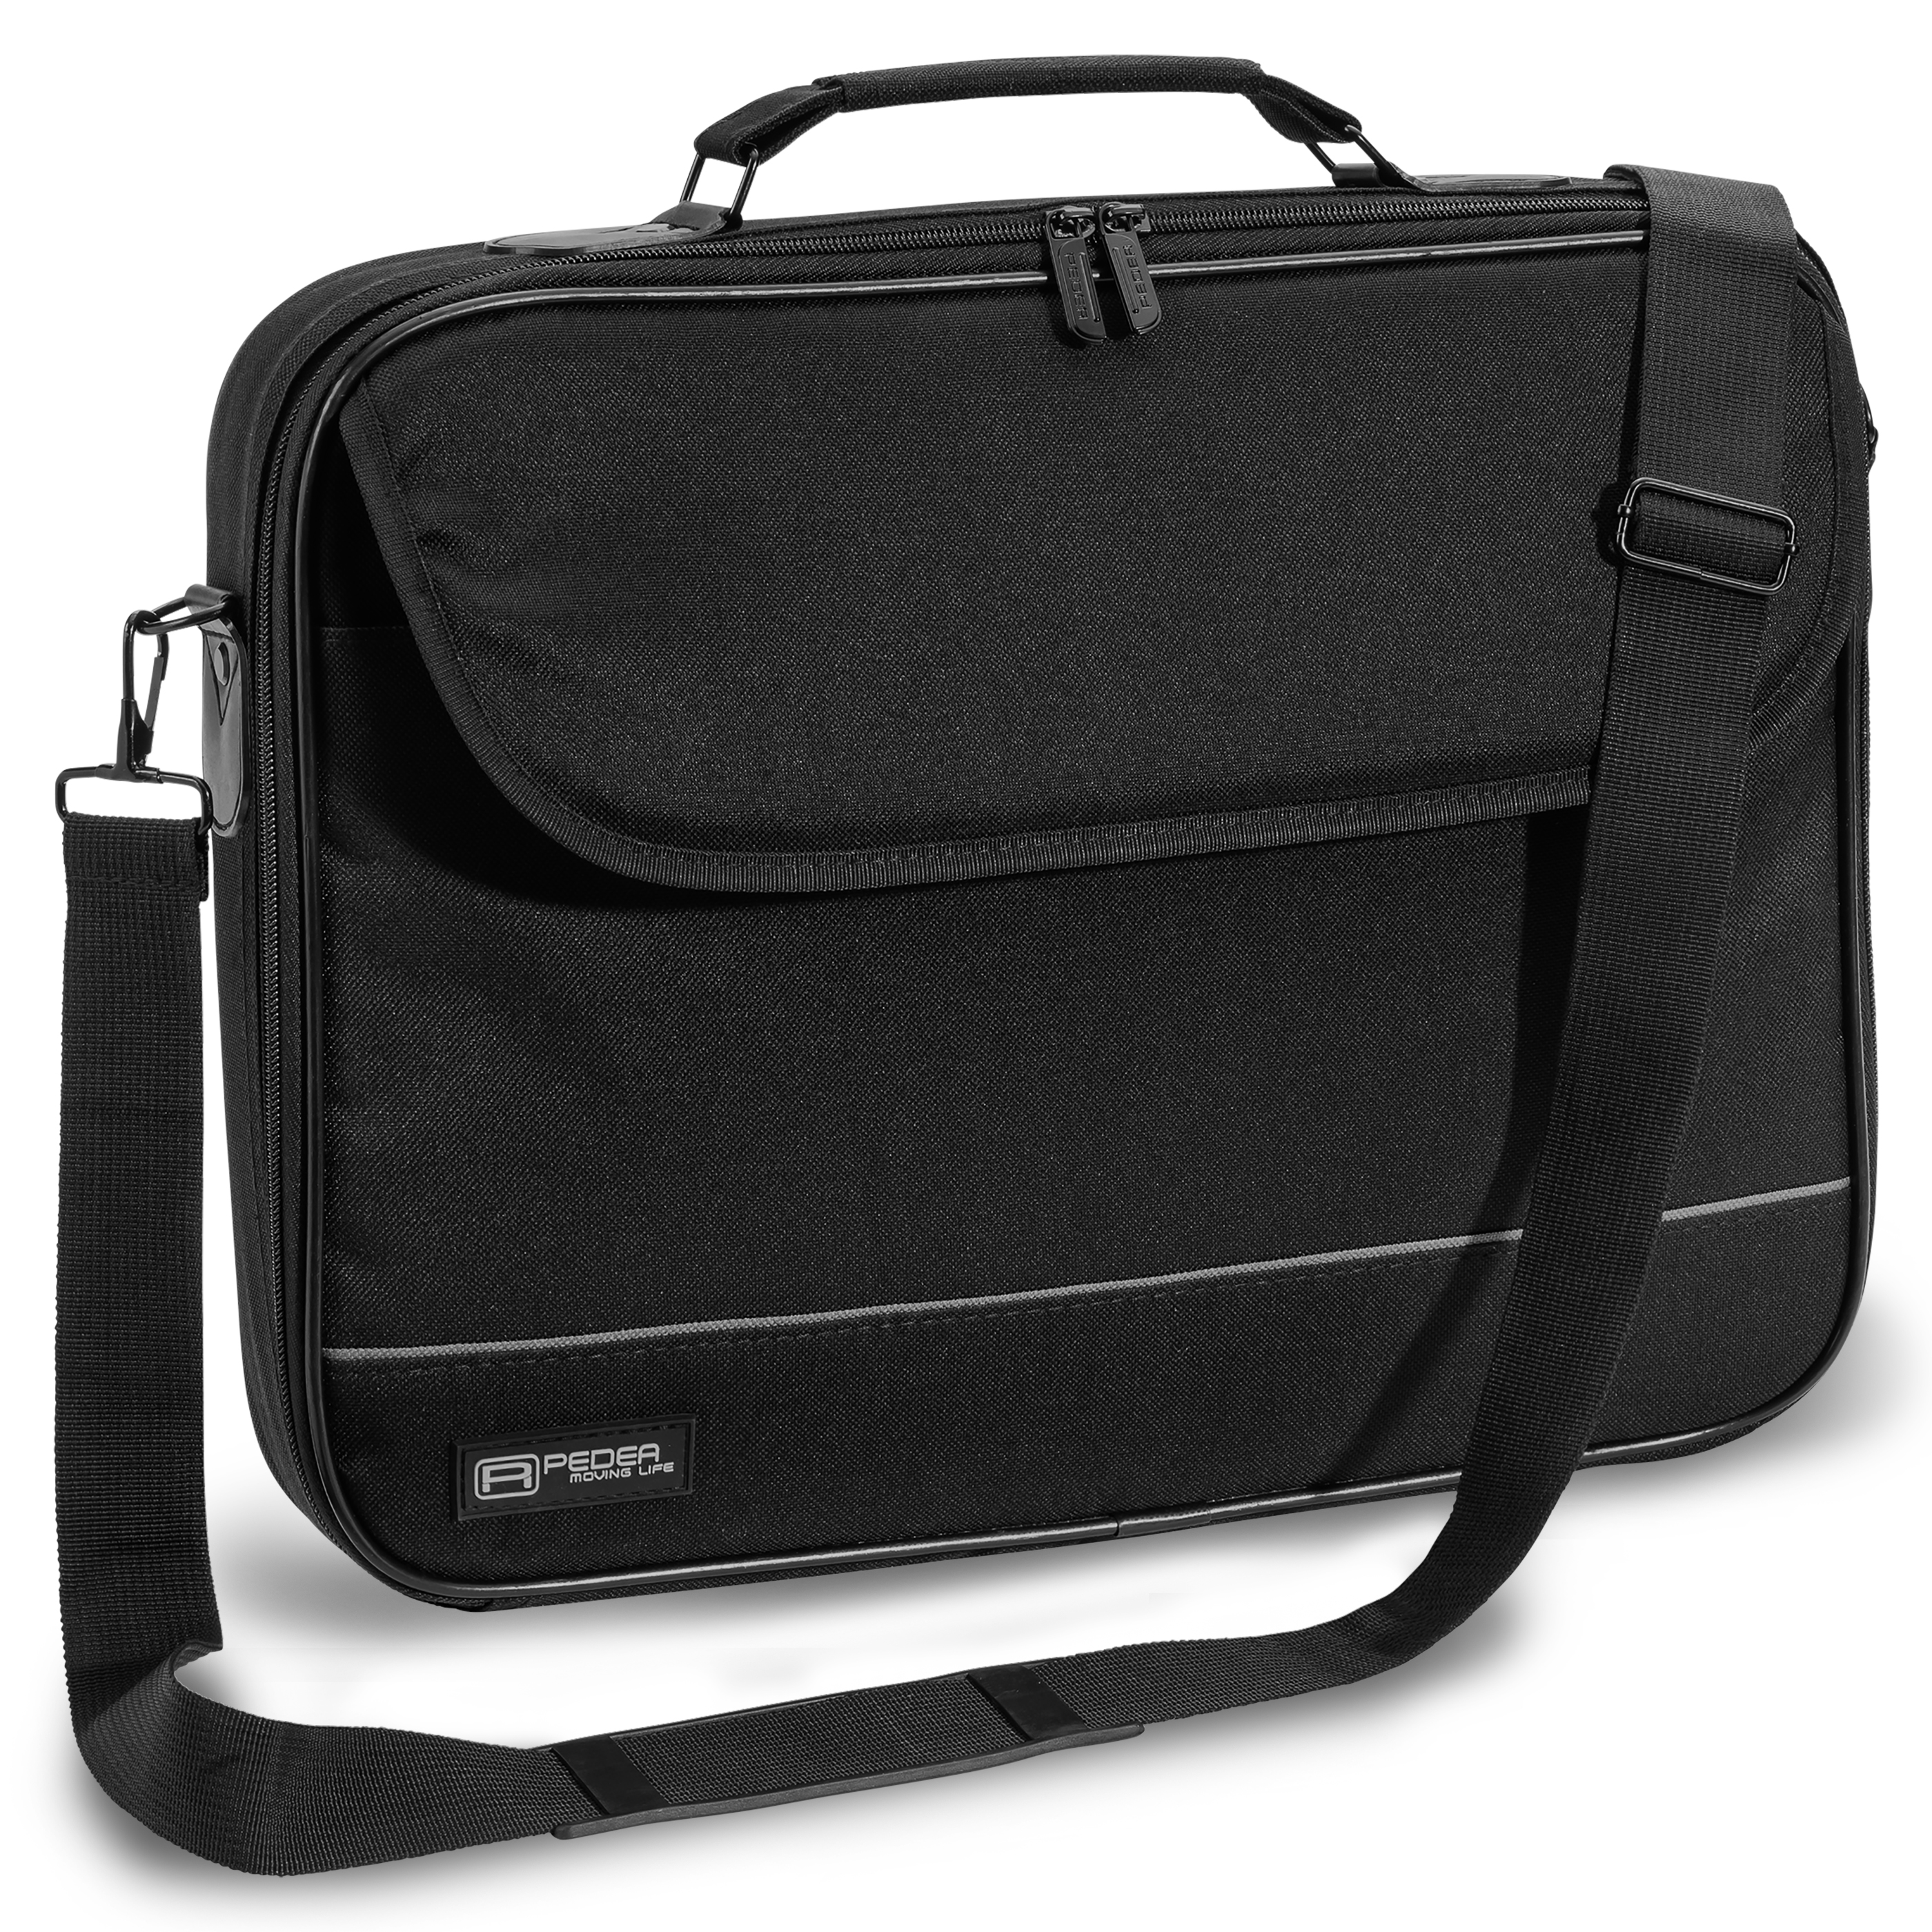 PEDEA Fair Clamshell Laptop Bag Case 17.3 inch